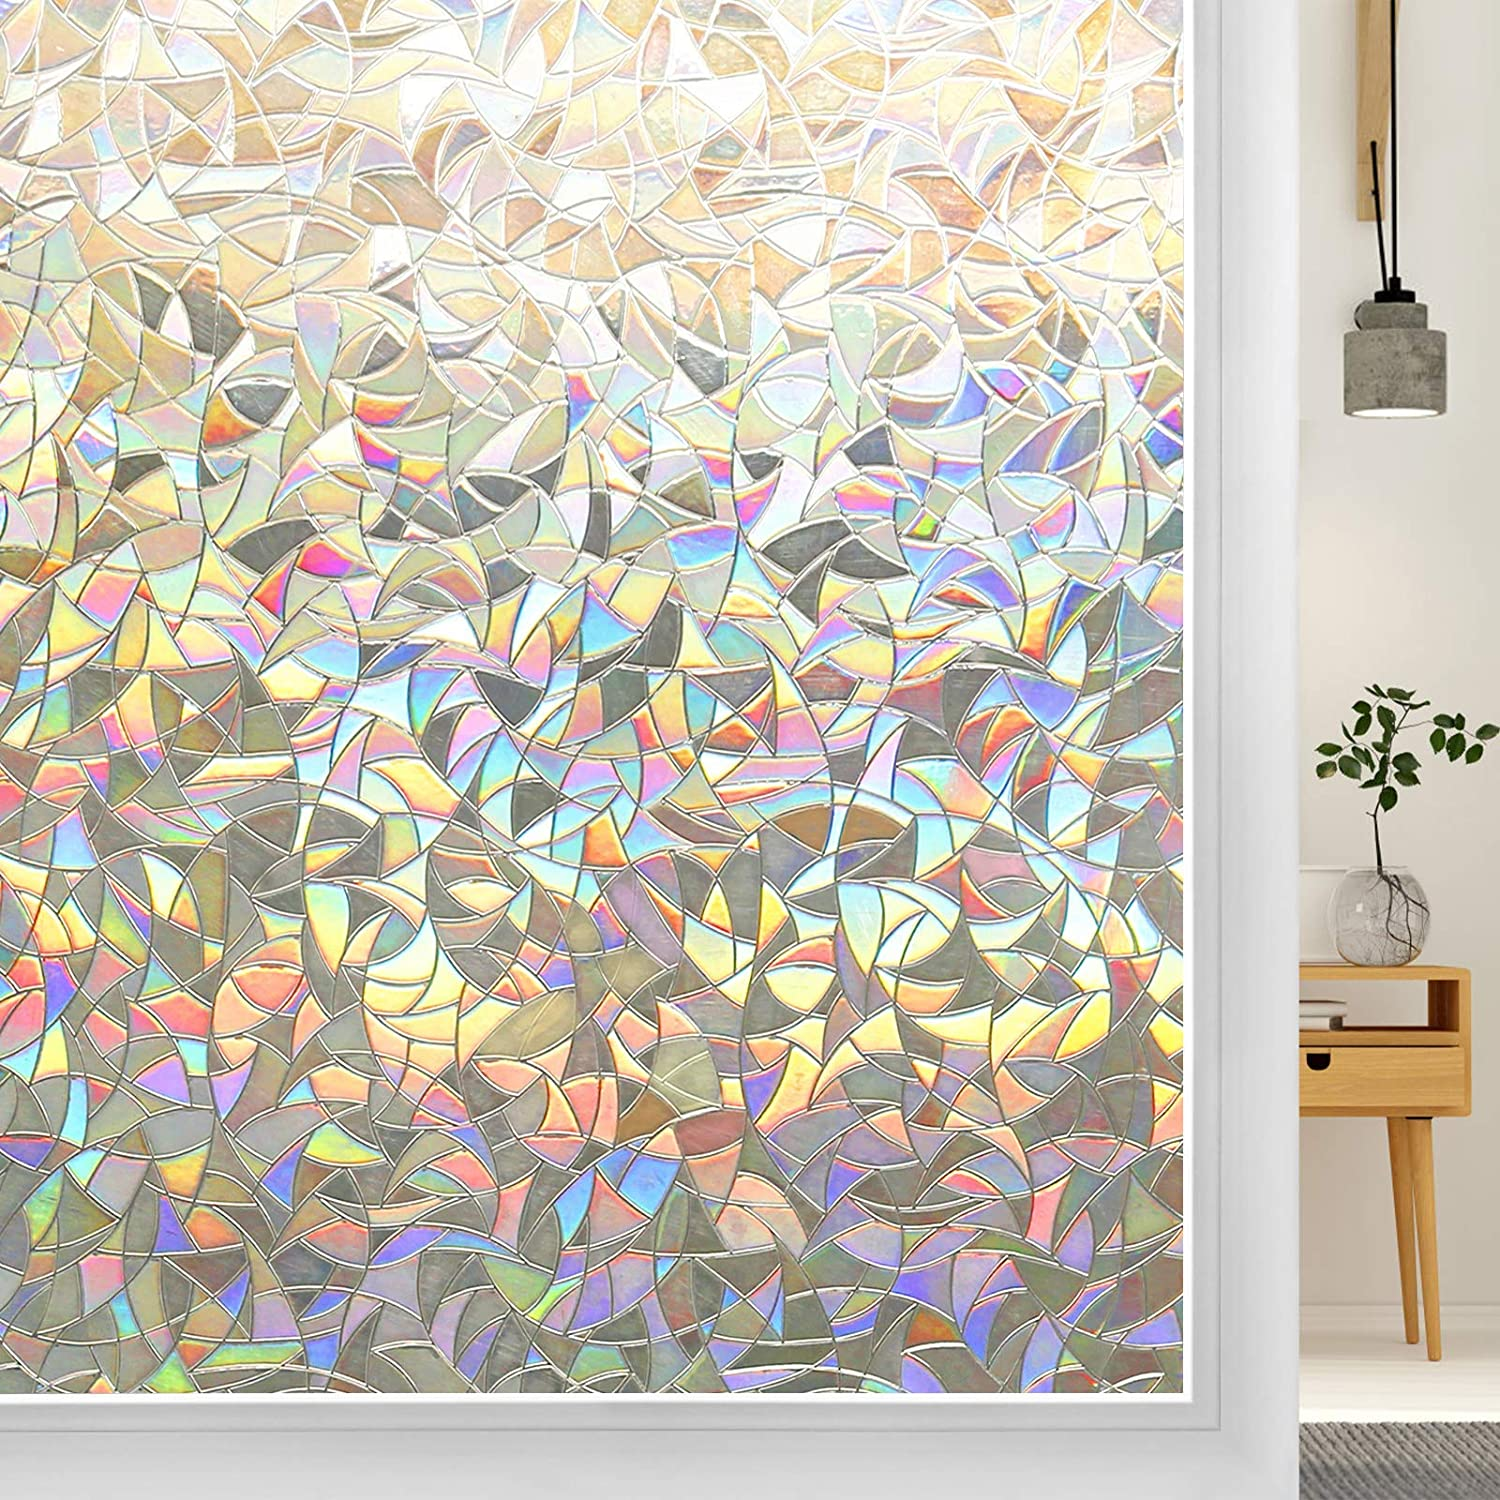 DOWELL Window Film Inexpensive Privacy 3D Films Decorative Glass for Popular product